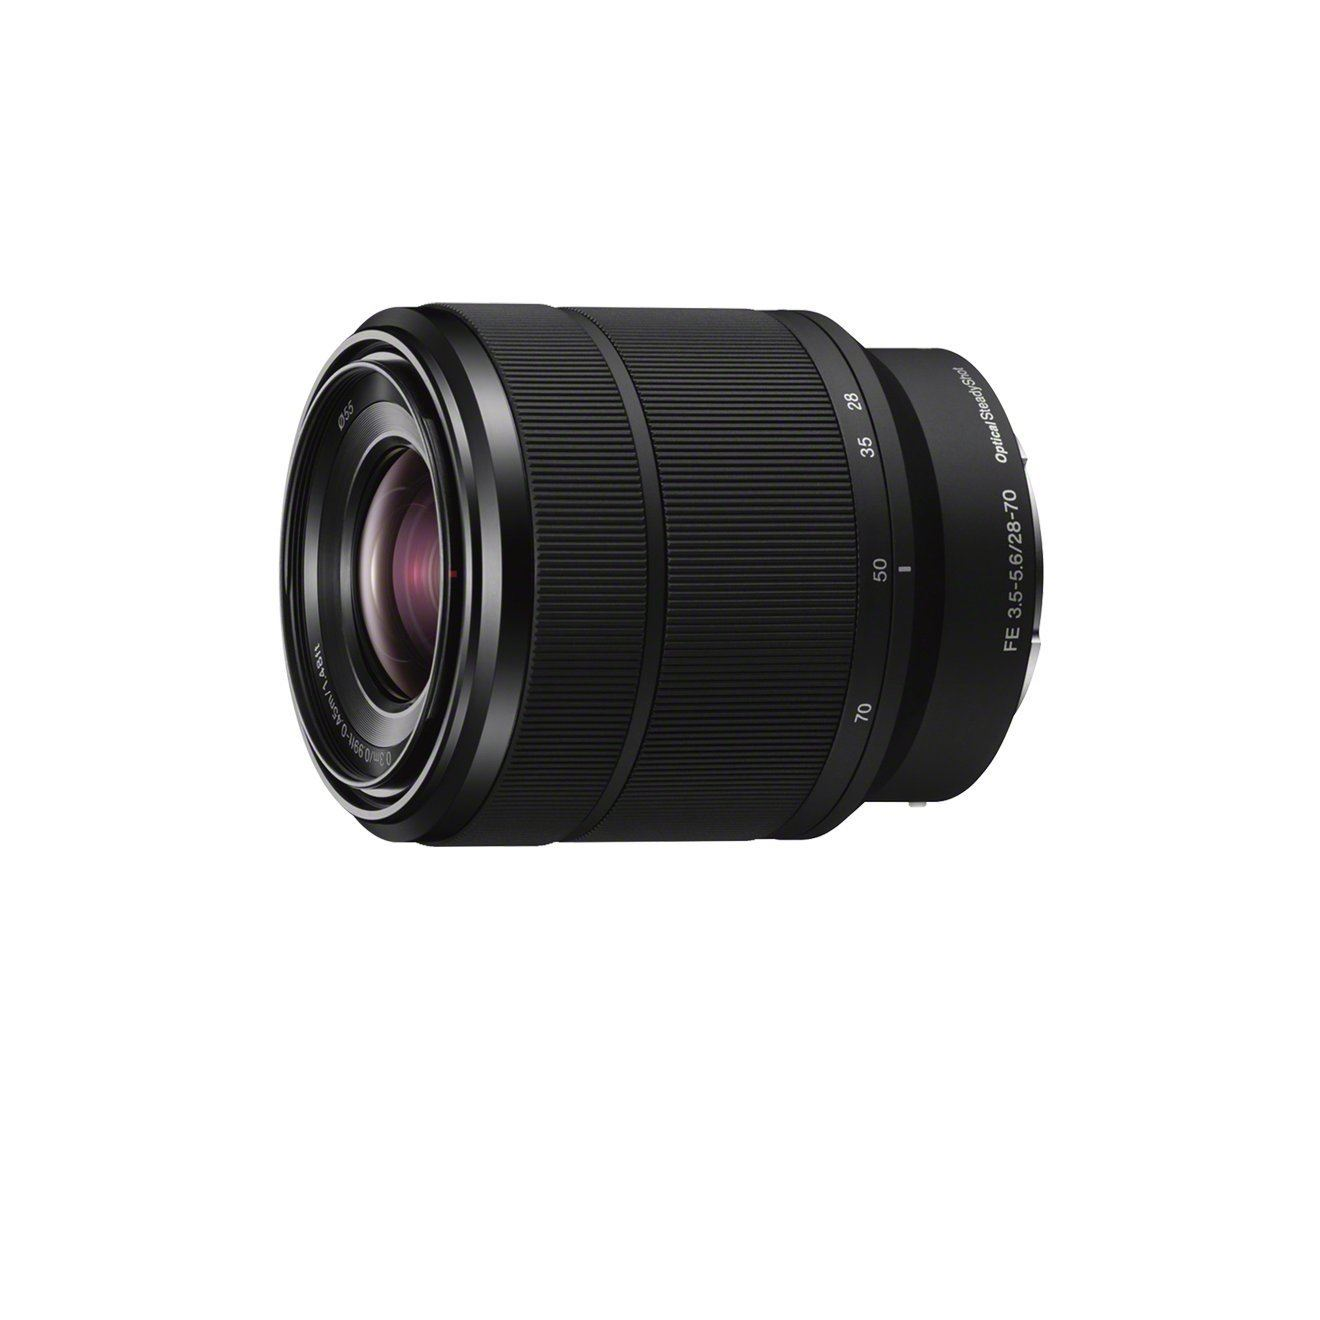 Sony E FE 28-70mm f3.5-5.6 OIS